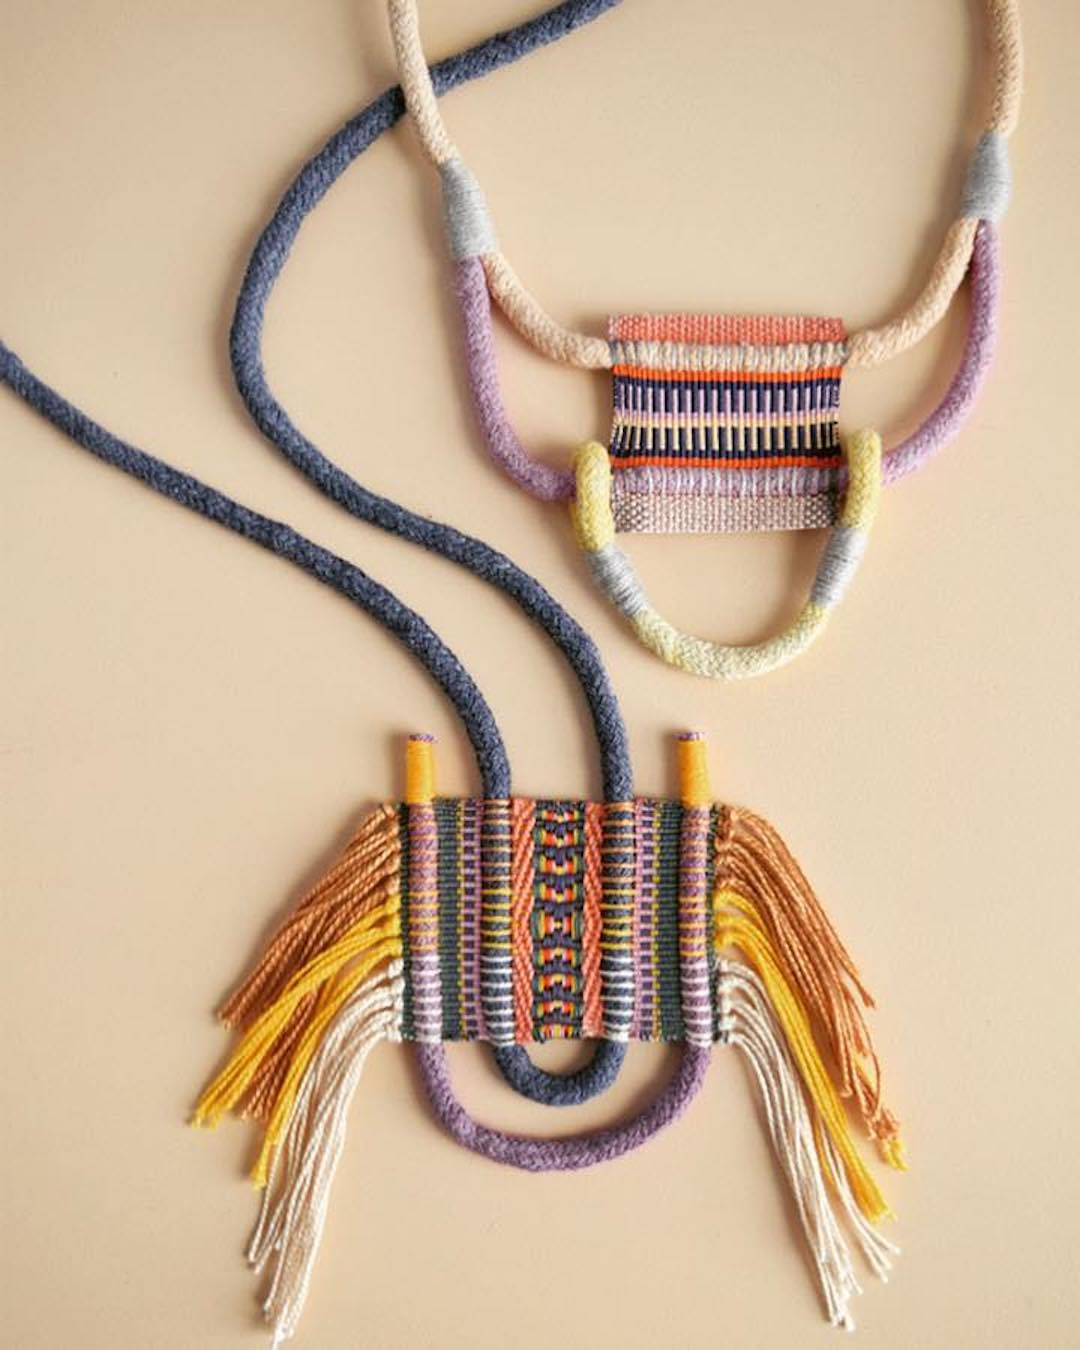 Weavings and Wrappings Form Stunning Textile Art to Wear Around Your Neck